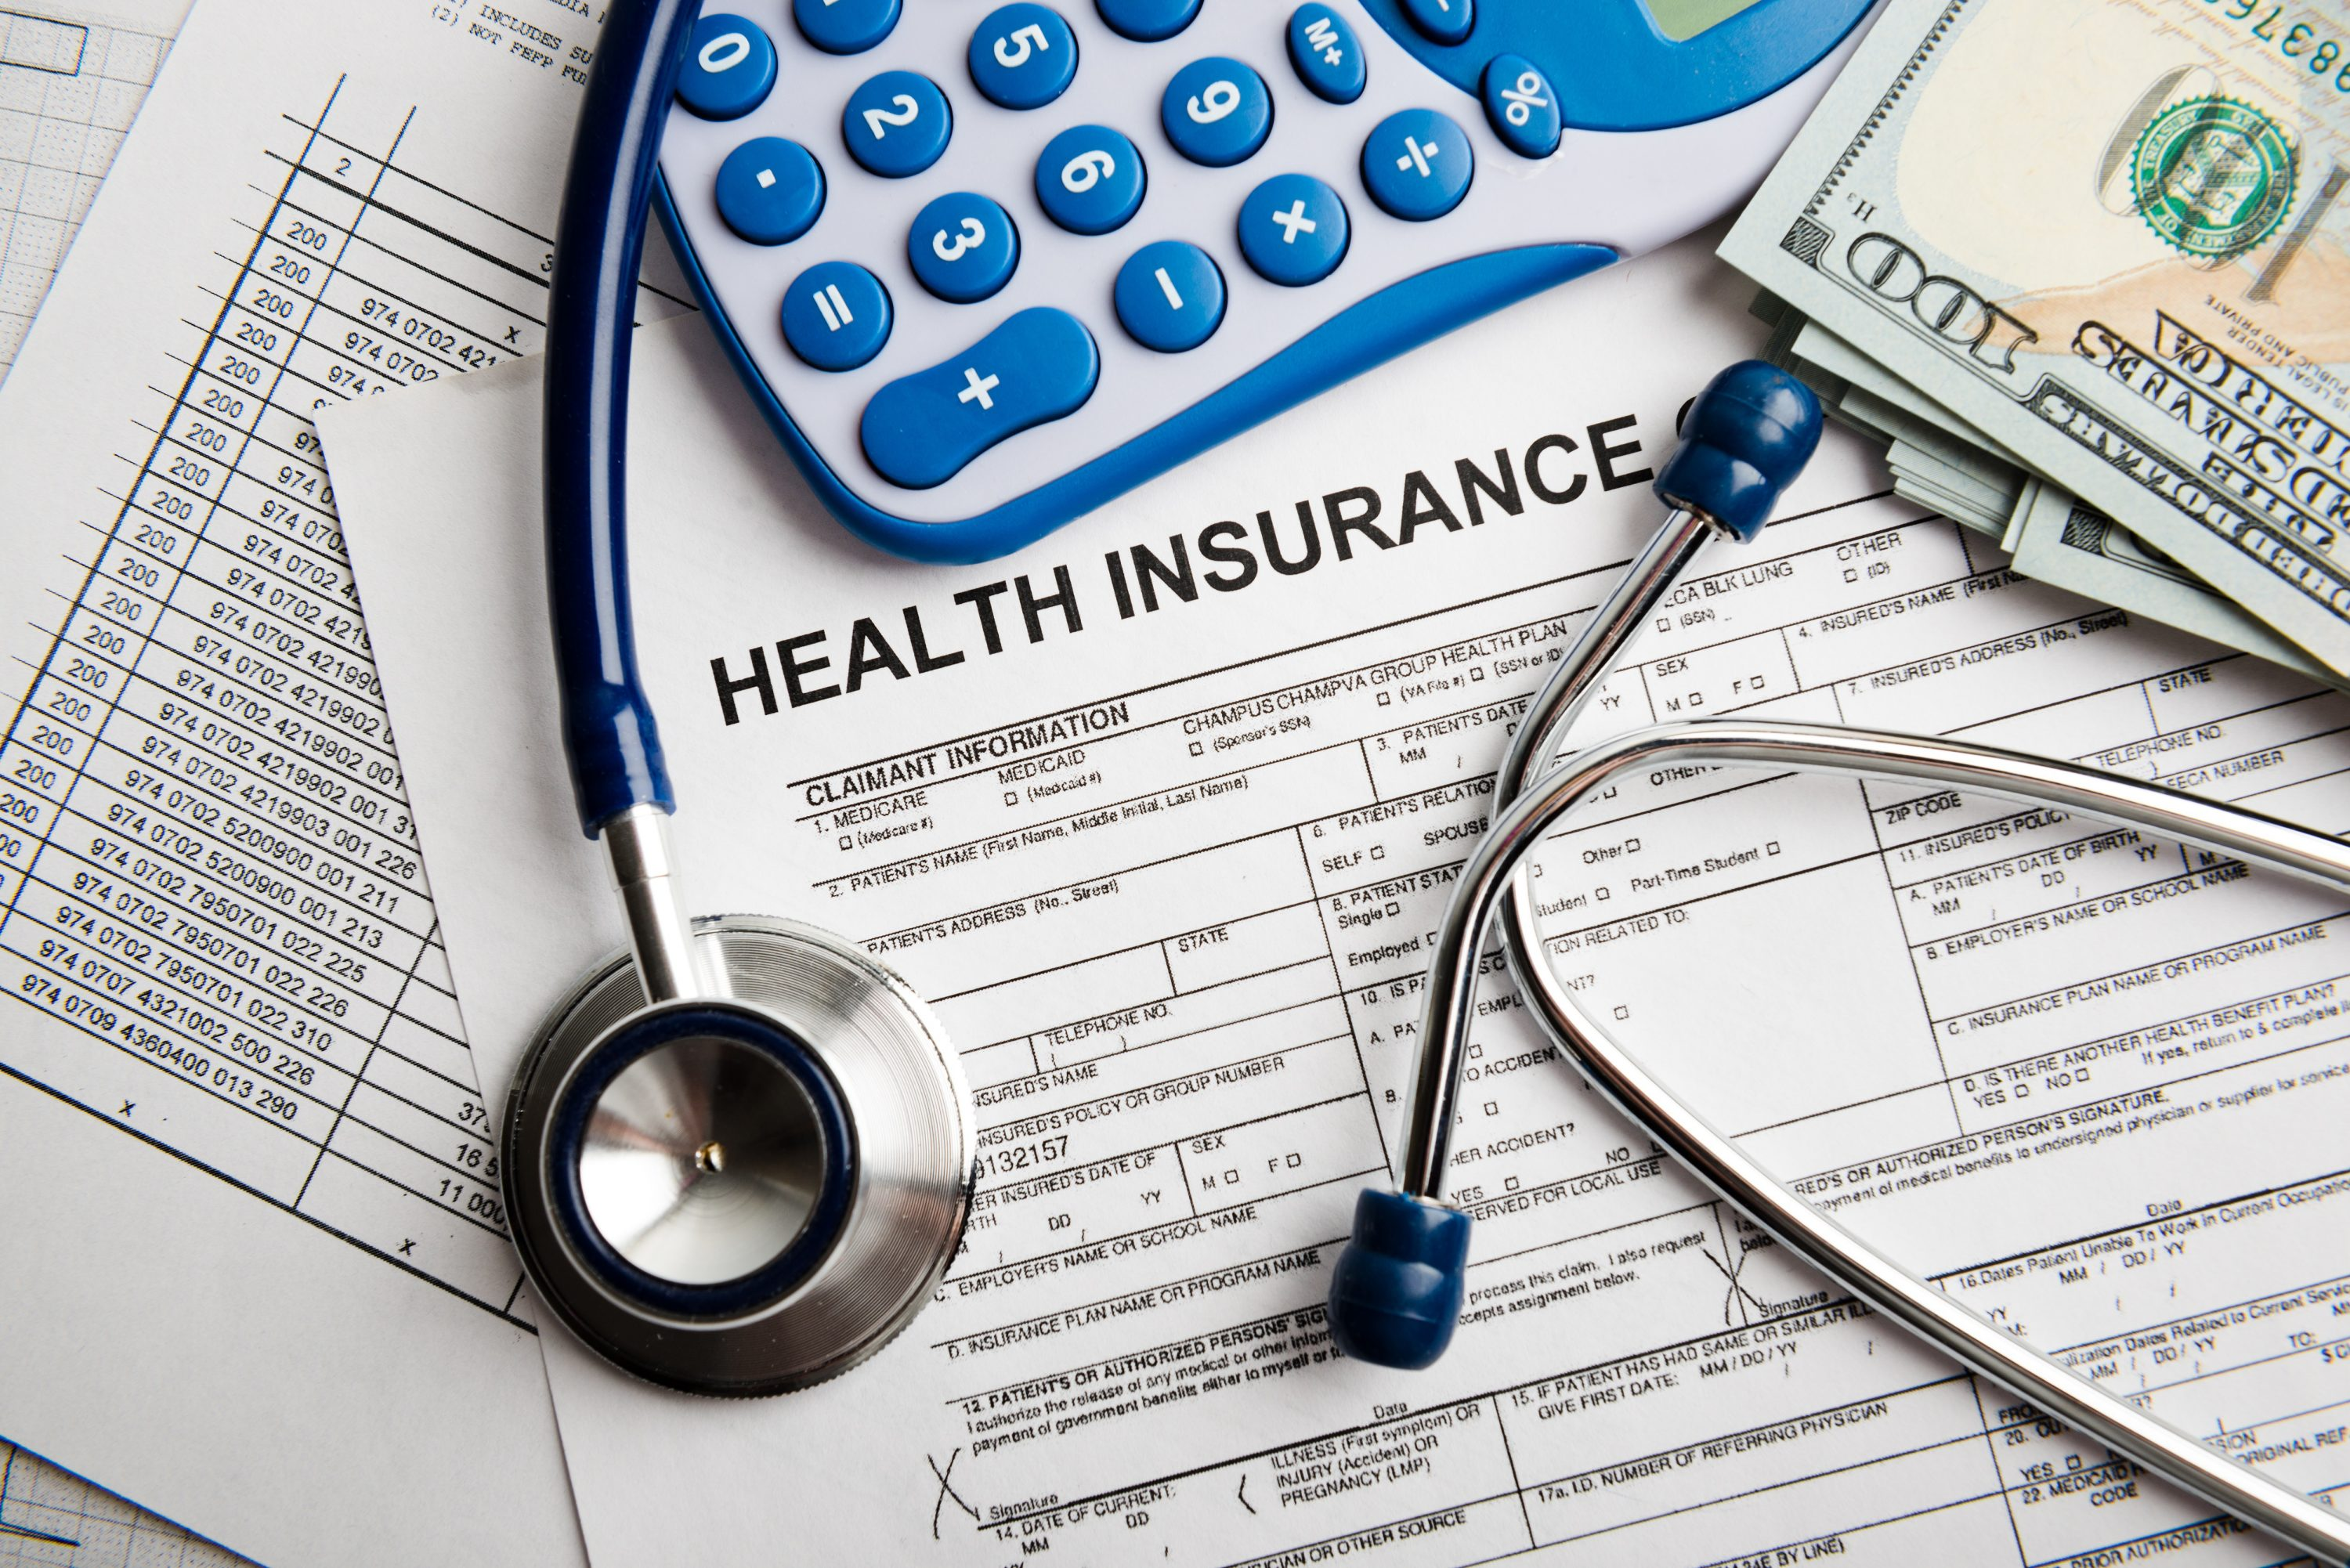 Key Terms to Know when Shopping for Health Insurance